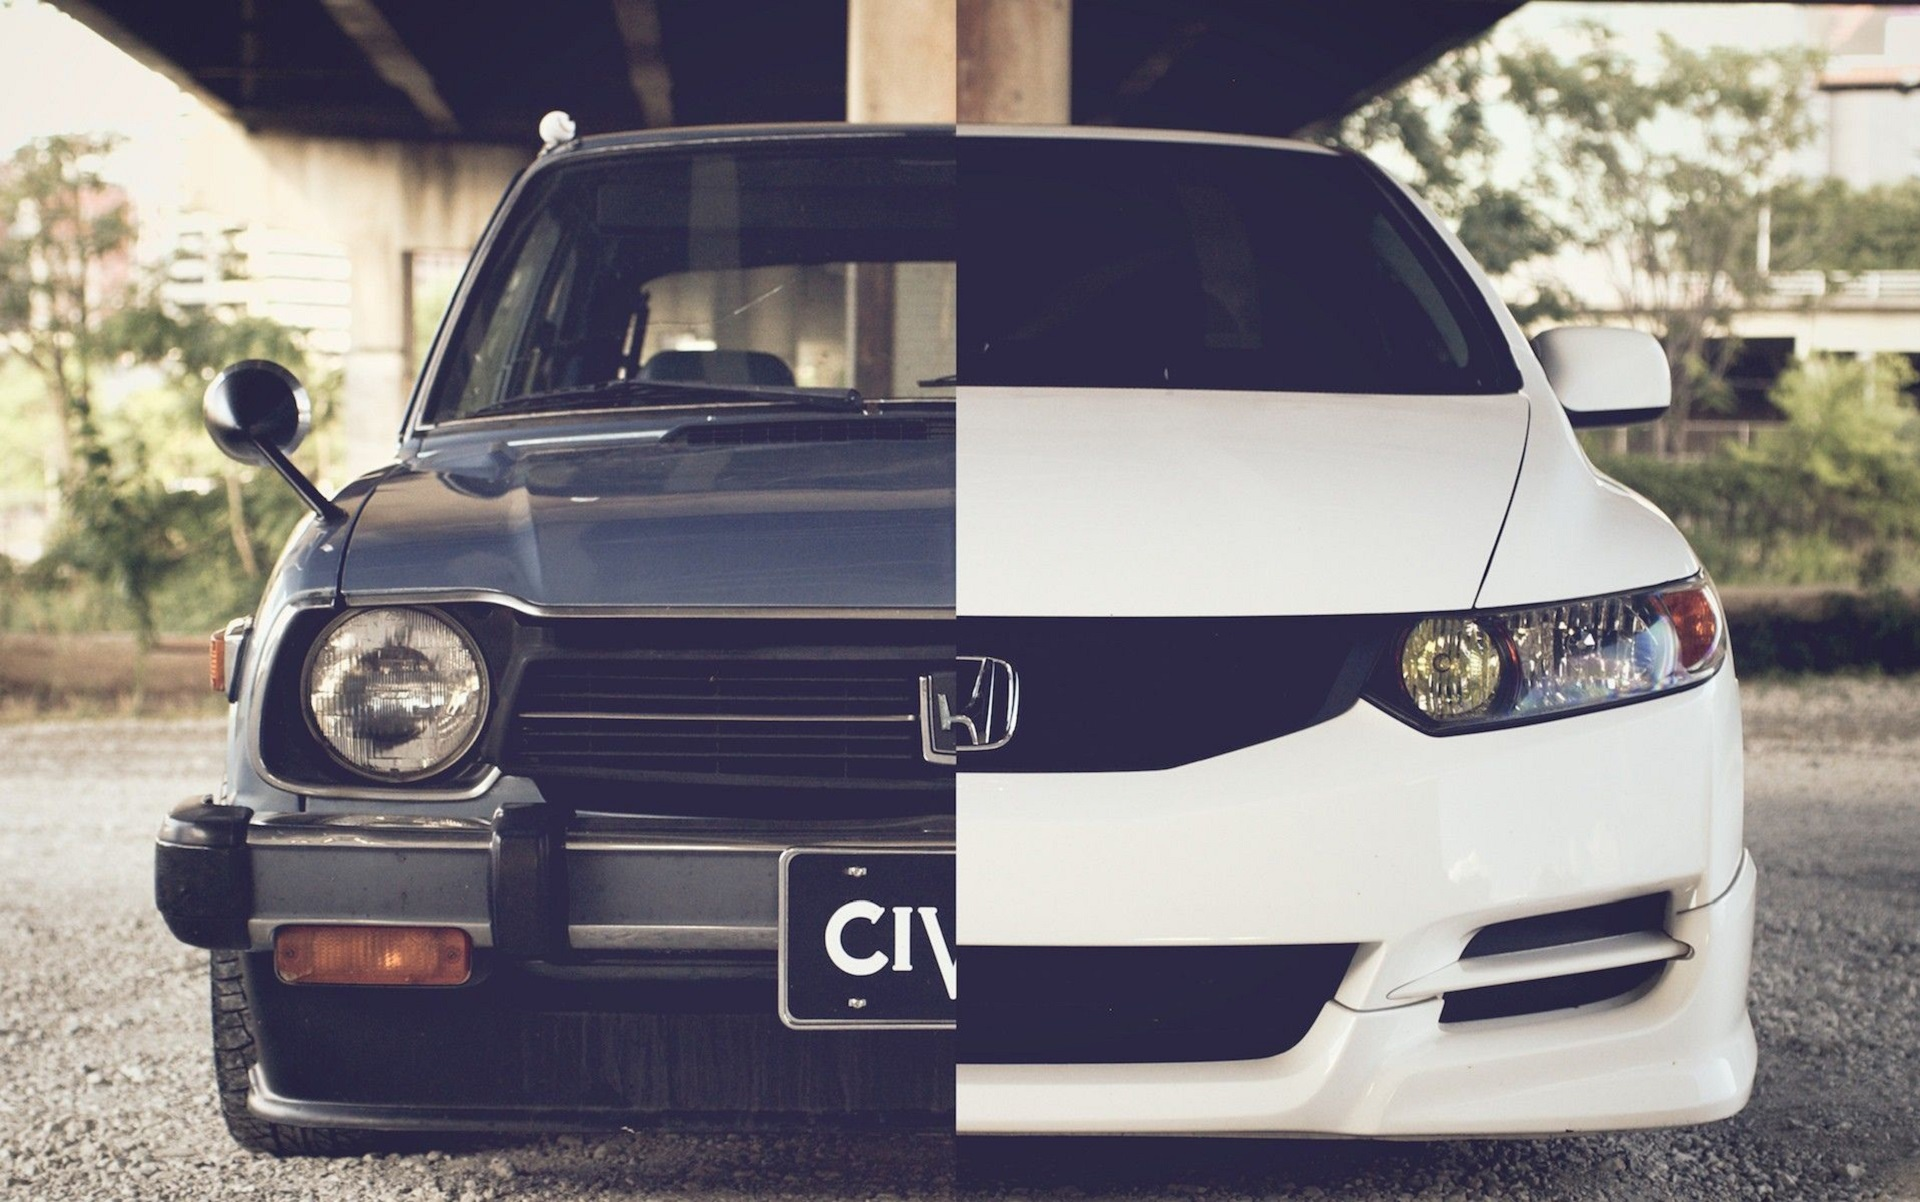 Honda Civic Wallpapers Images Photos Pictures Backgrounds